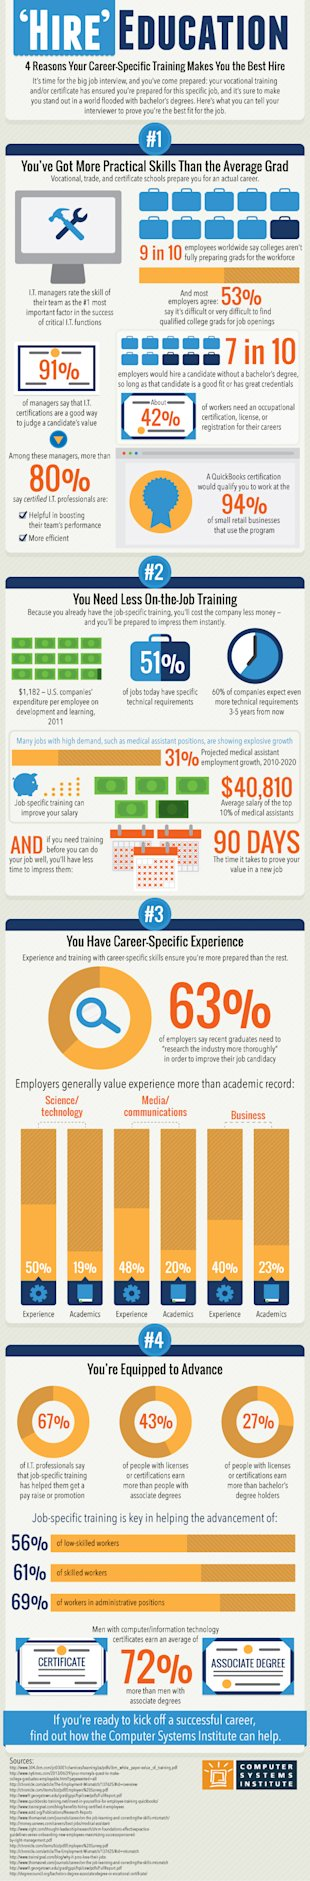 What Makes You The Best Hire image CSI Now Hire Education Infographic 600px3